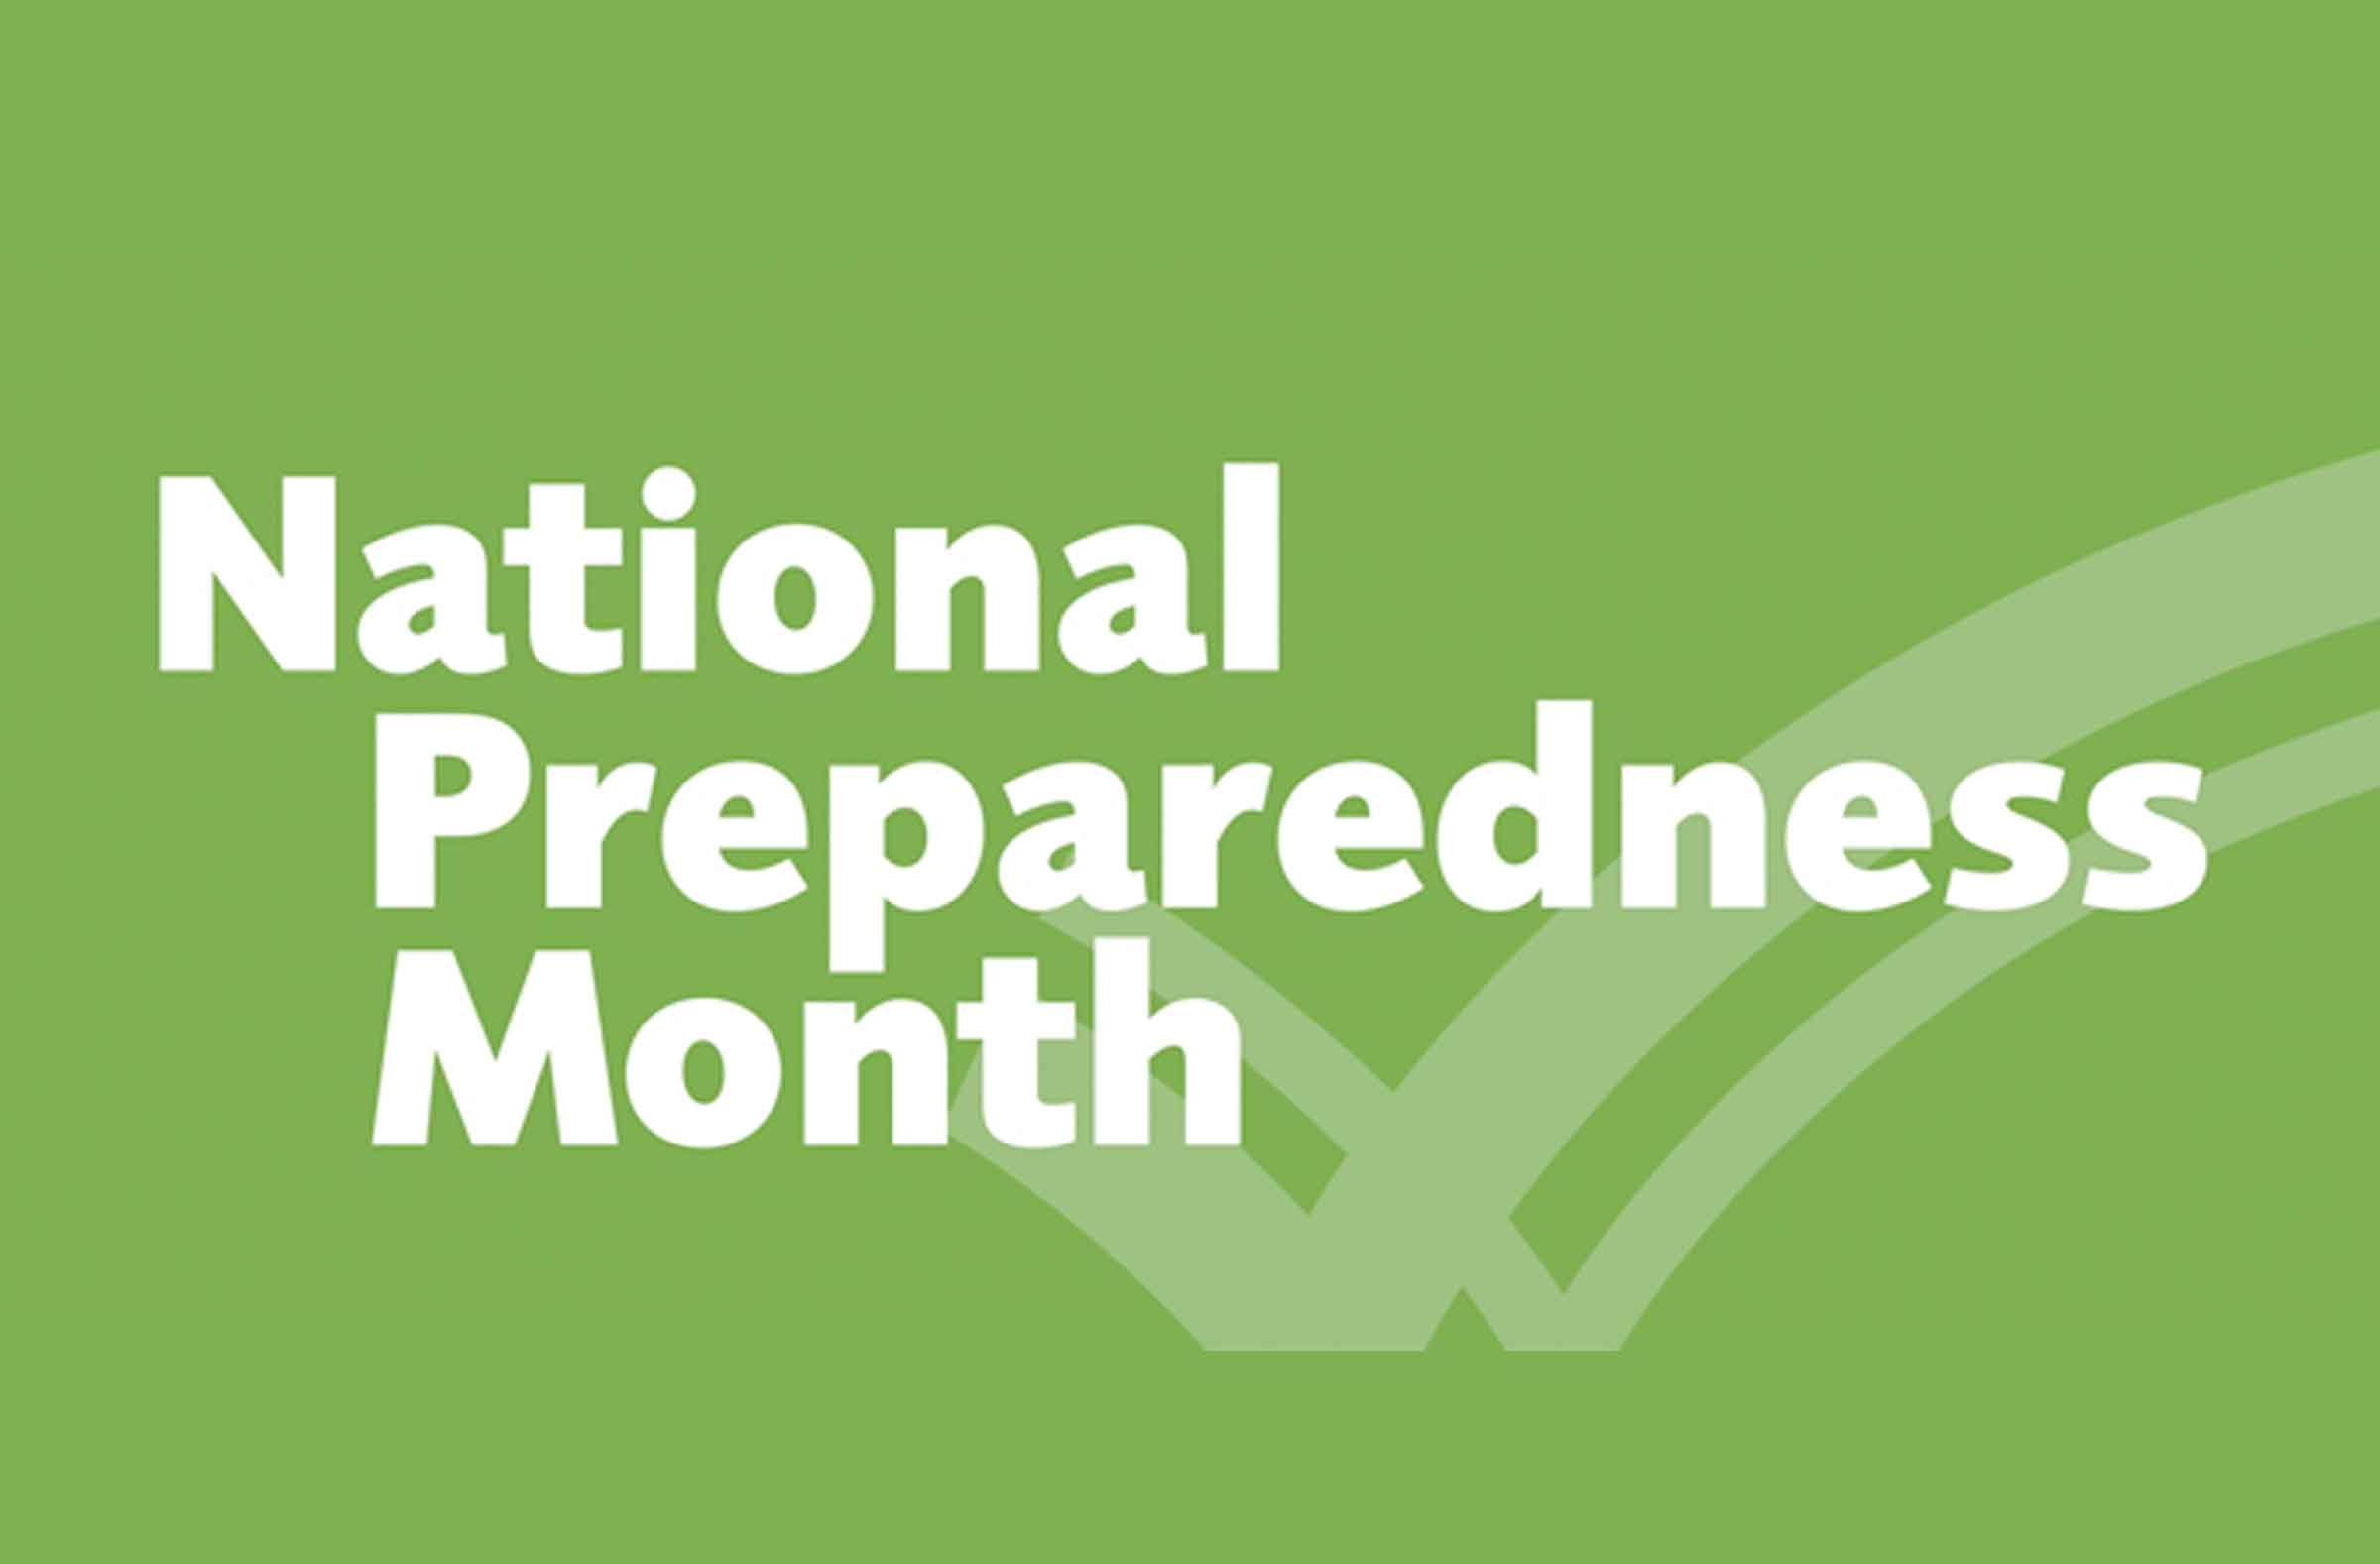 NEWSMAKER — Make a plan for National Preparedness Month this September